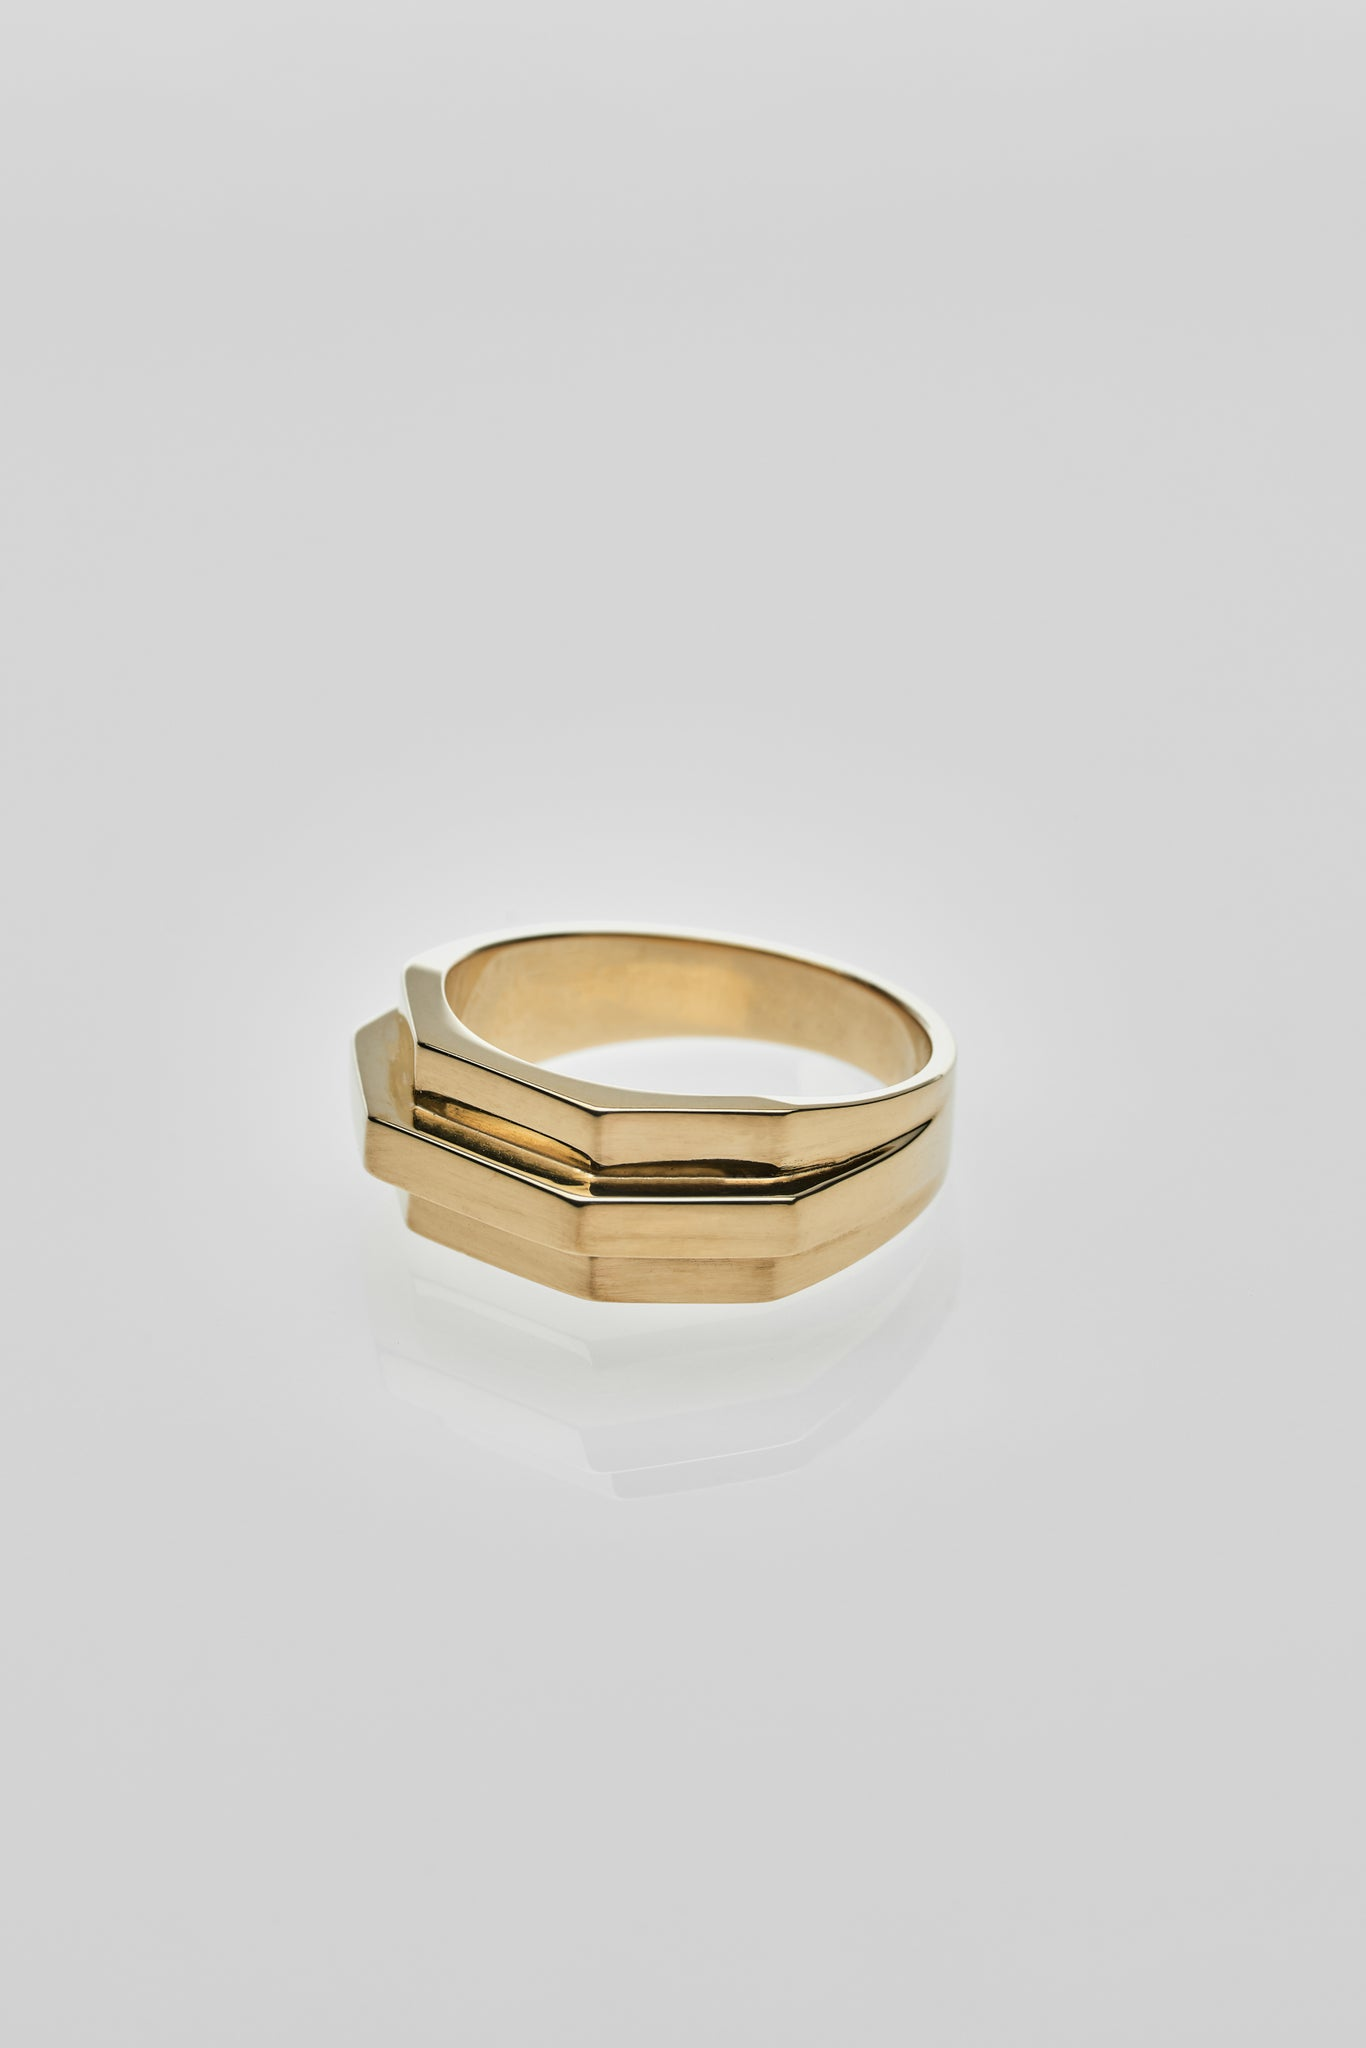 Siza Ring Gold - Arte Antwerp